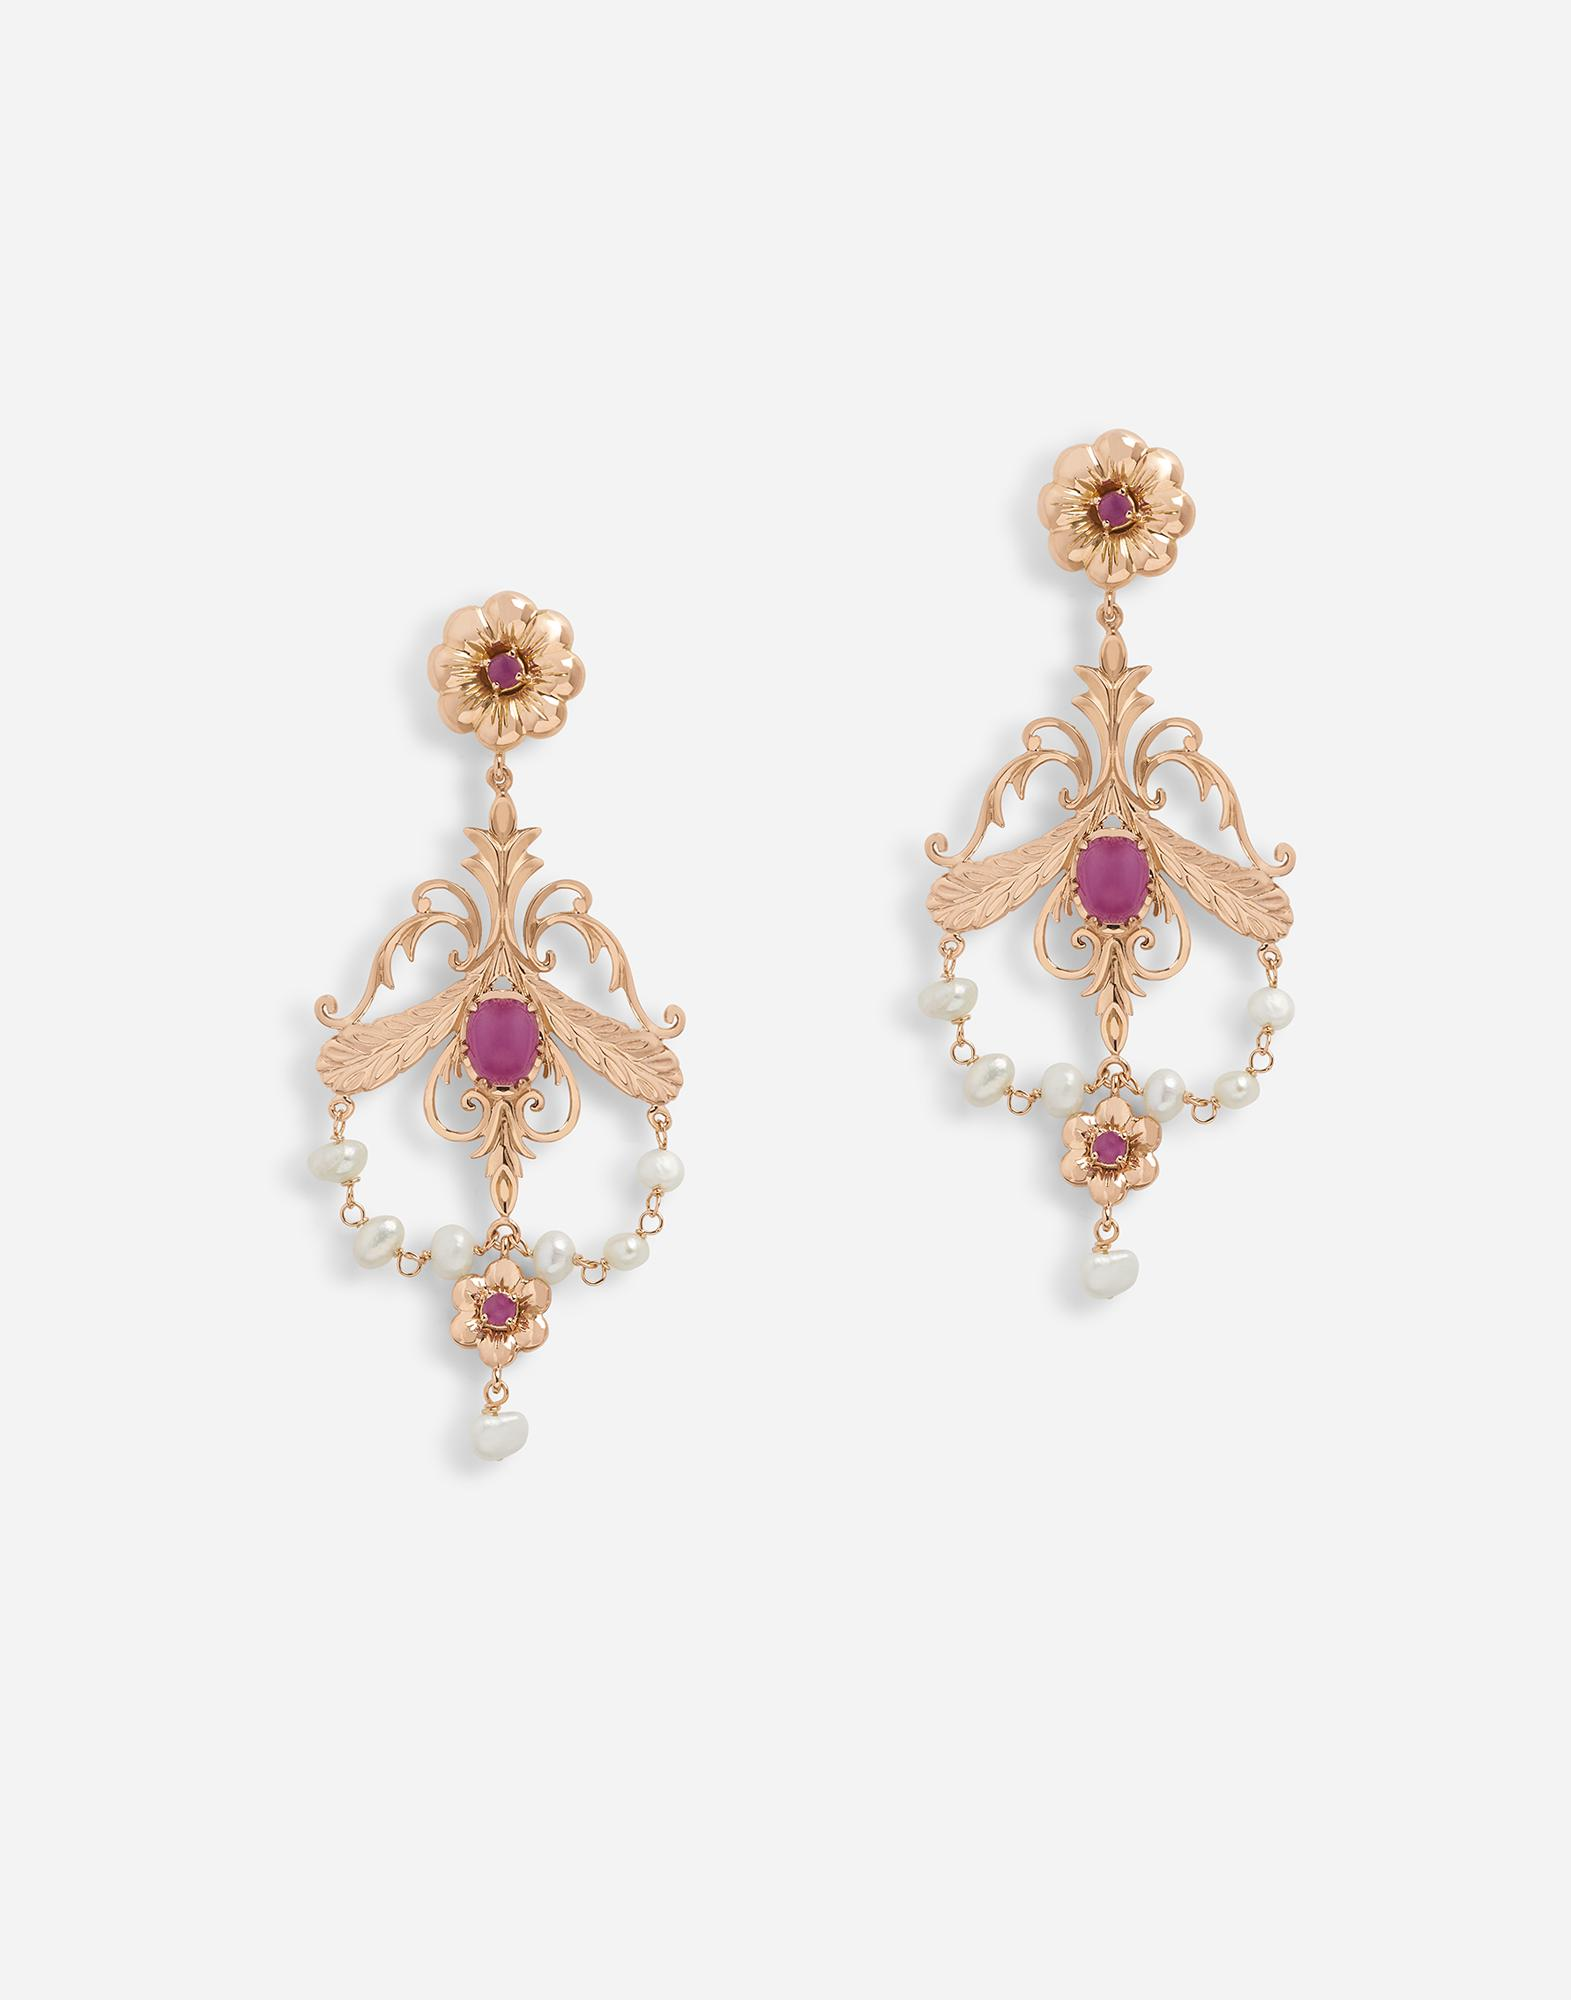 Baroque-style earrings with rubies